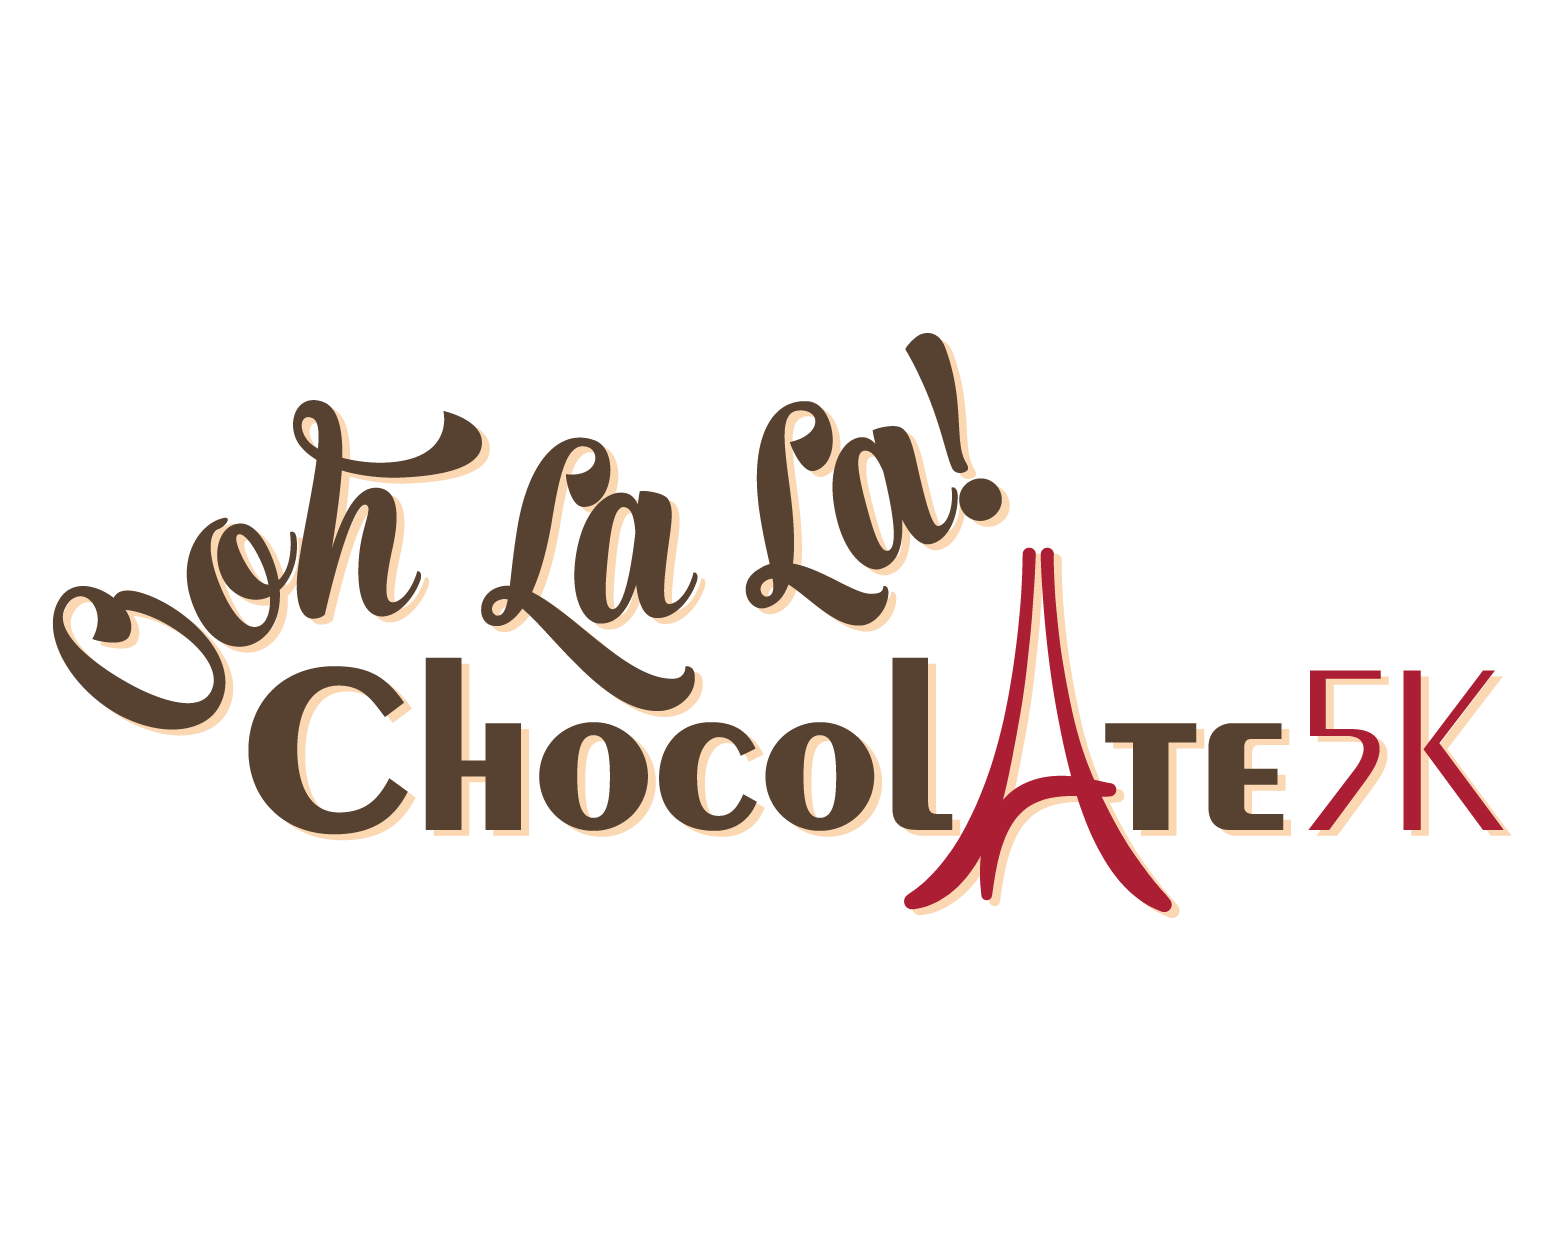 Ooh-La-La Chocolate 5k